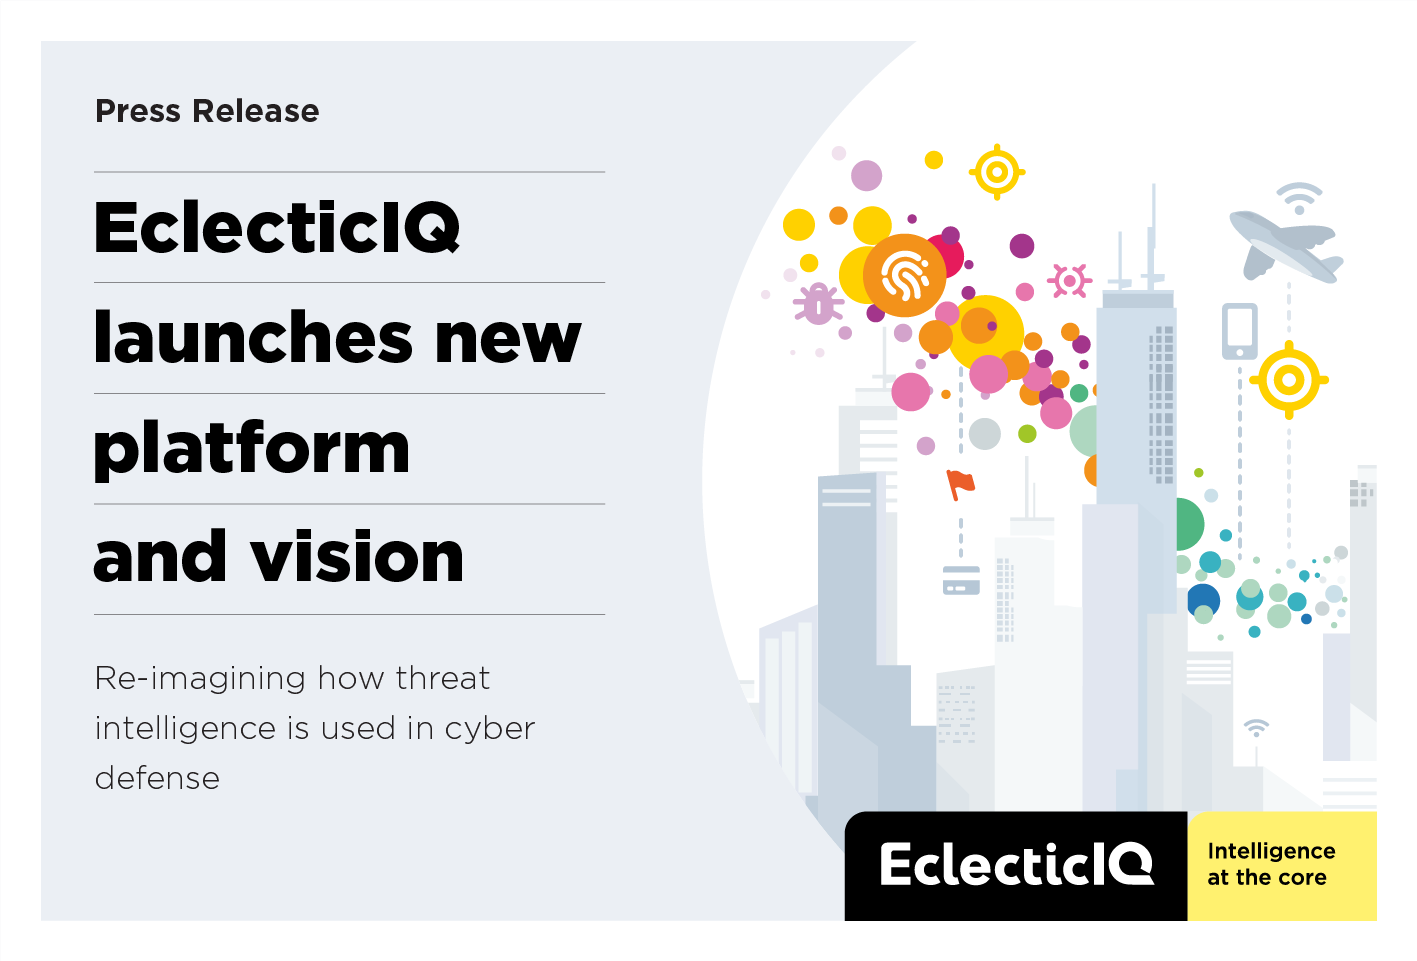 EclecticIQ launches new platform and vision